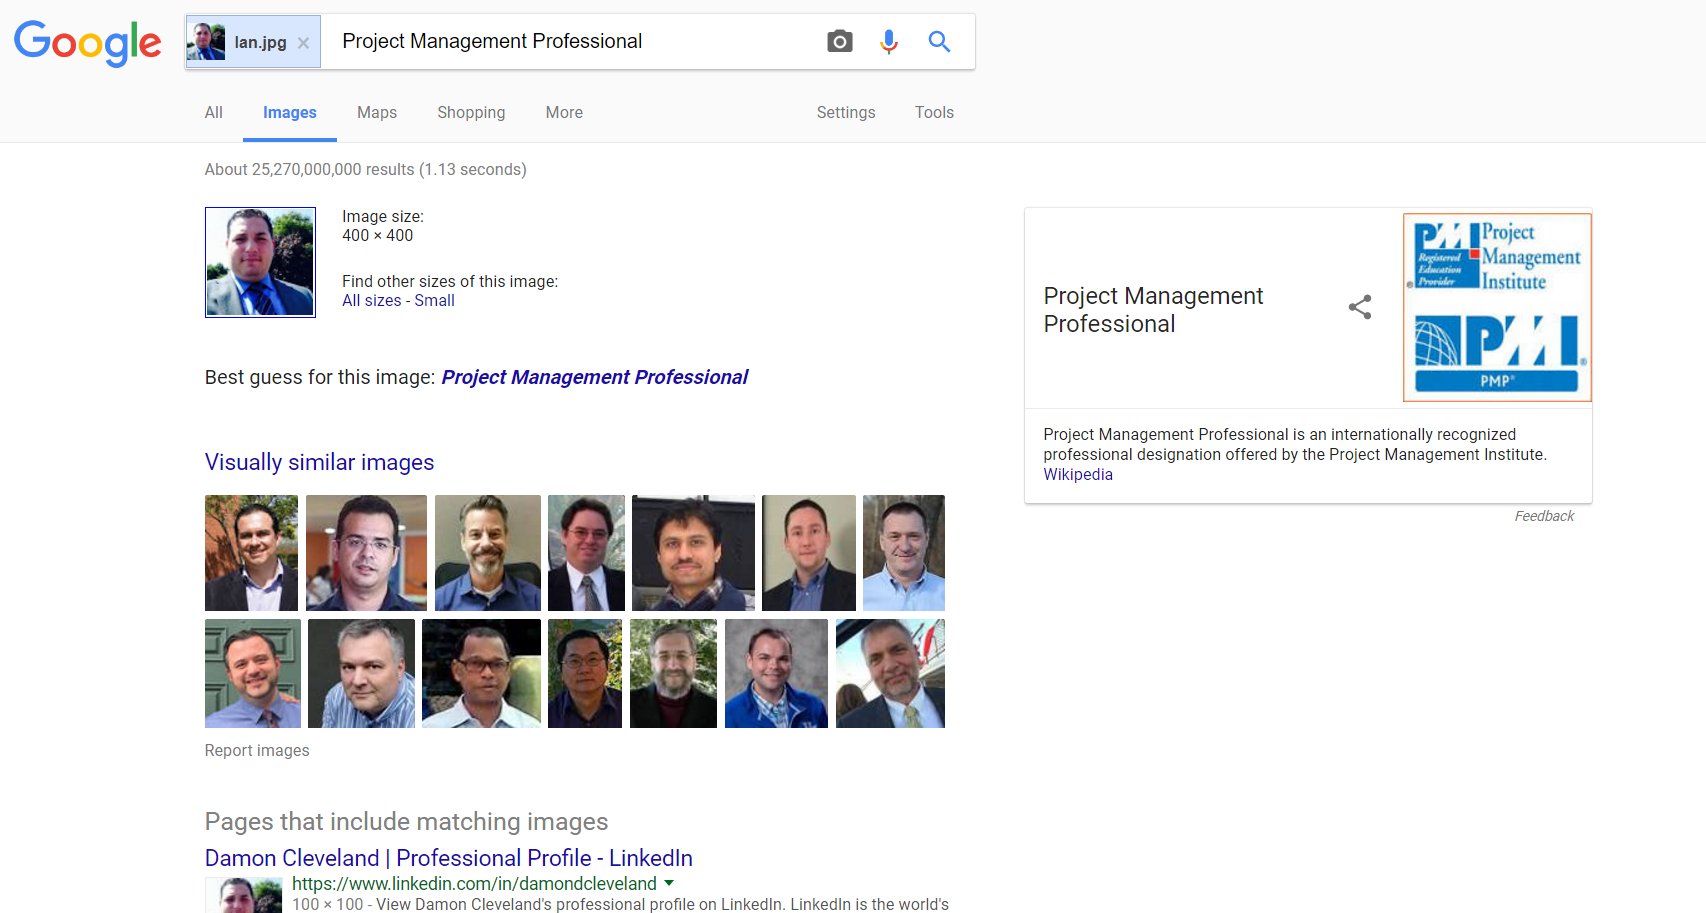 Google Image Search Engine: Ian Face Image